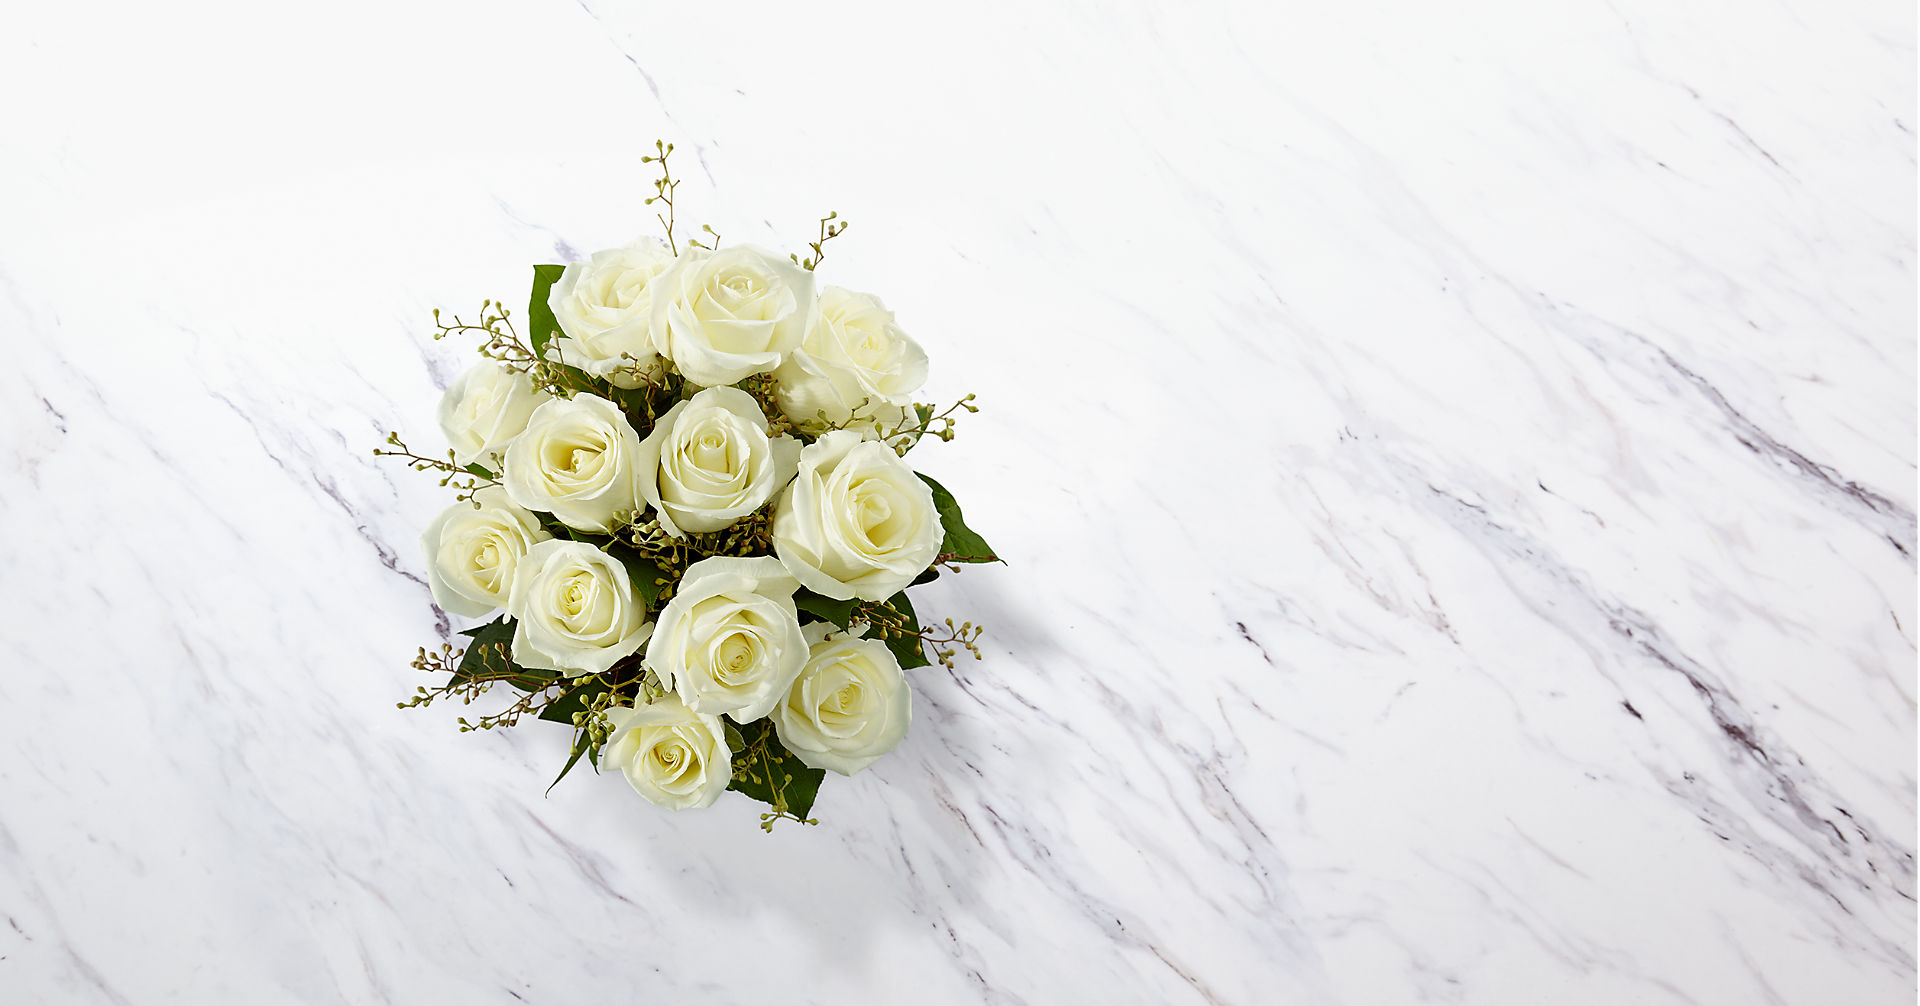 The White Rose Bouquet - VASE INCLUDED - Image 2 Of 2